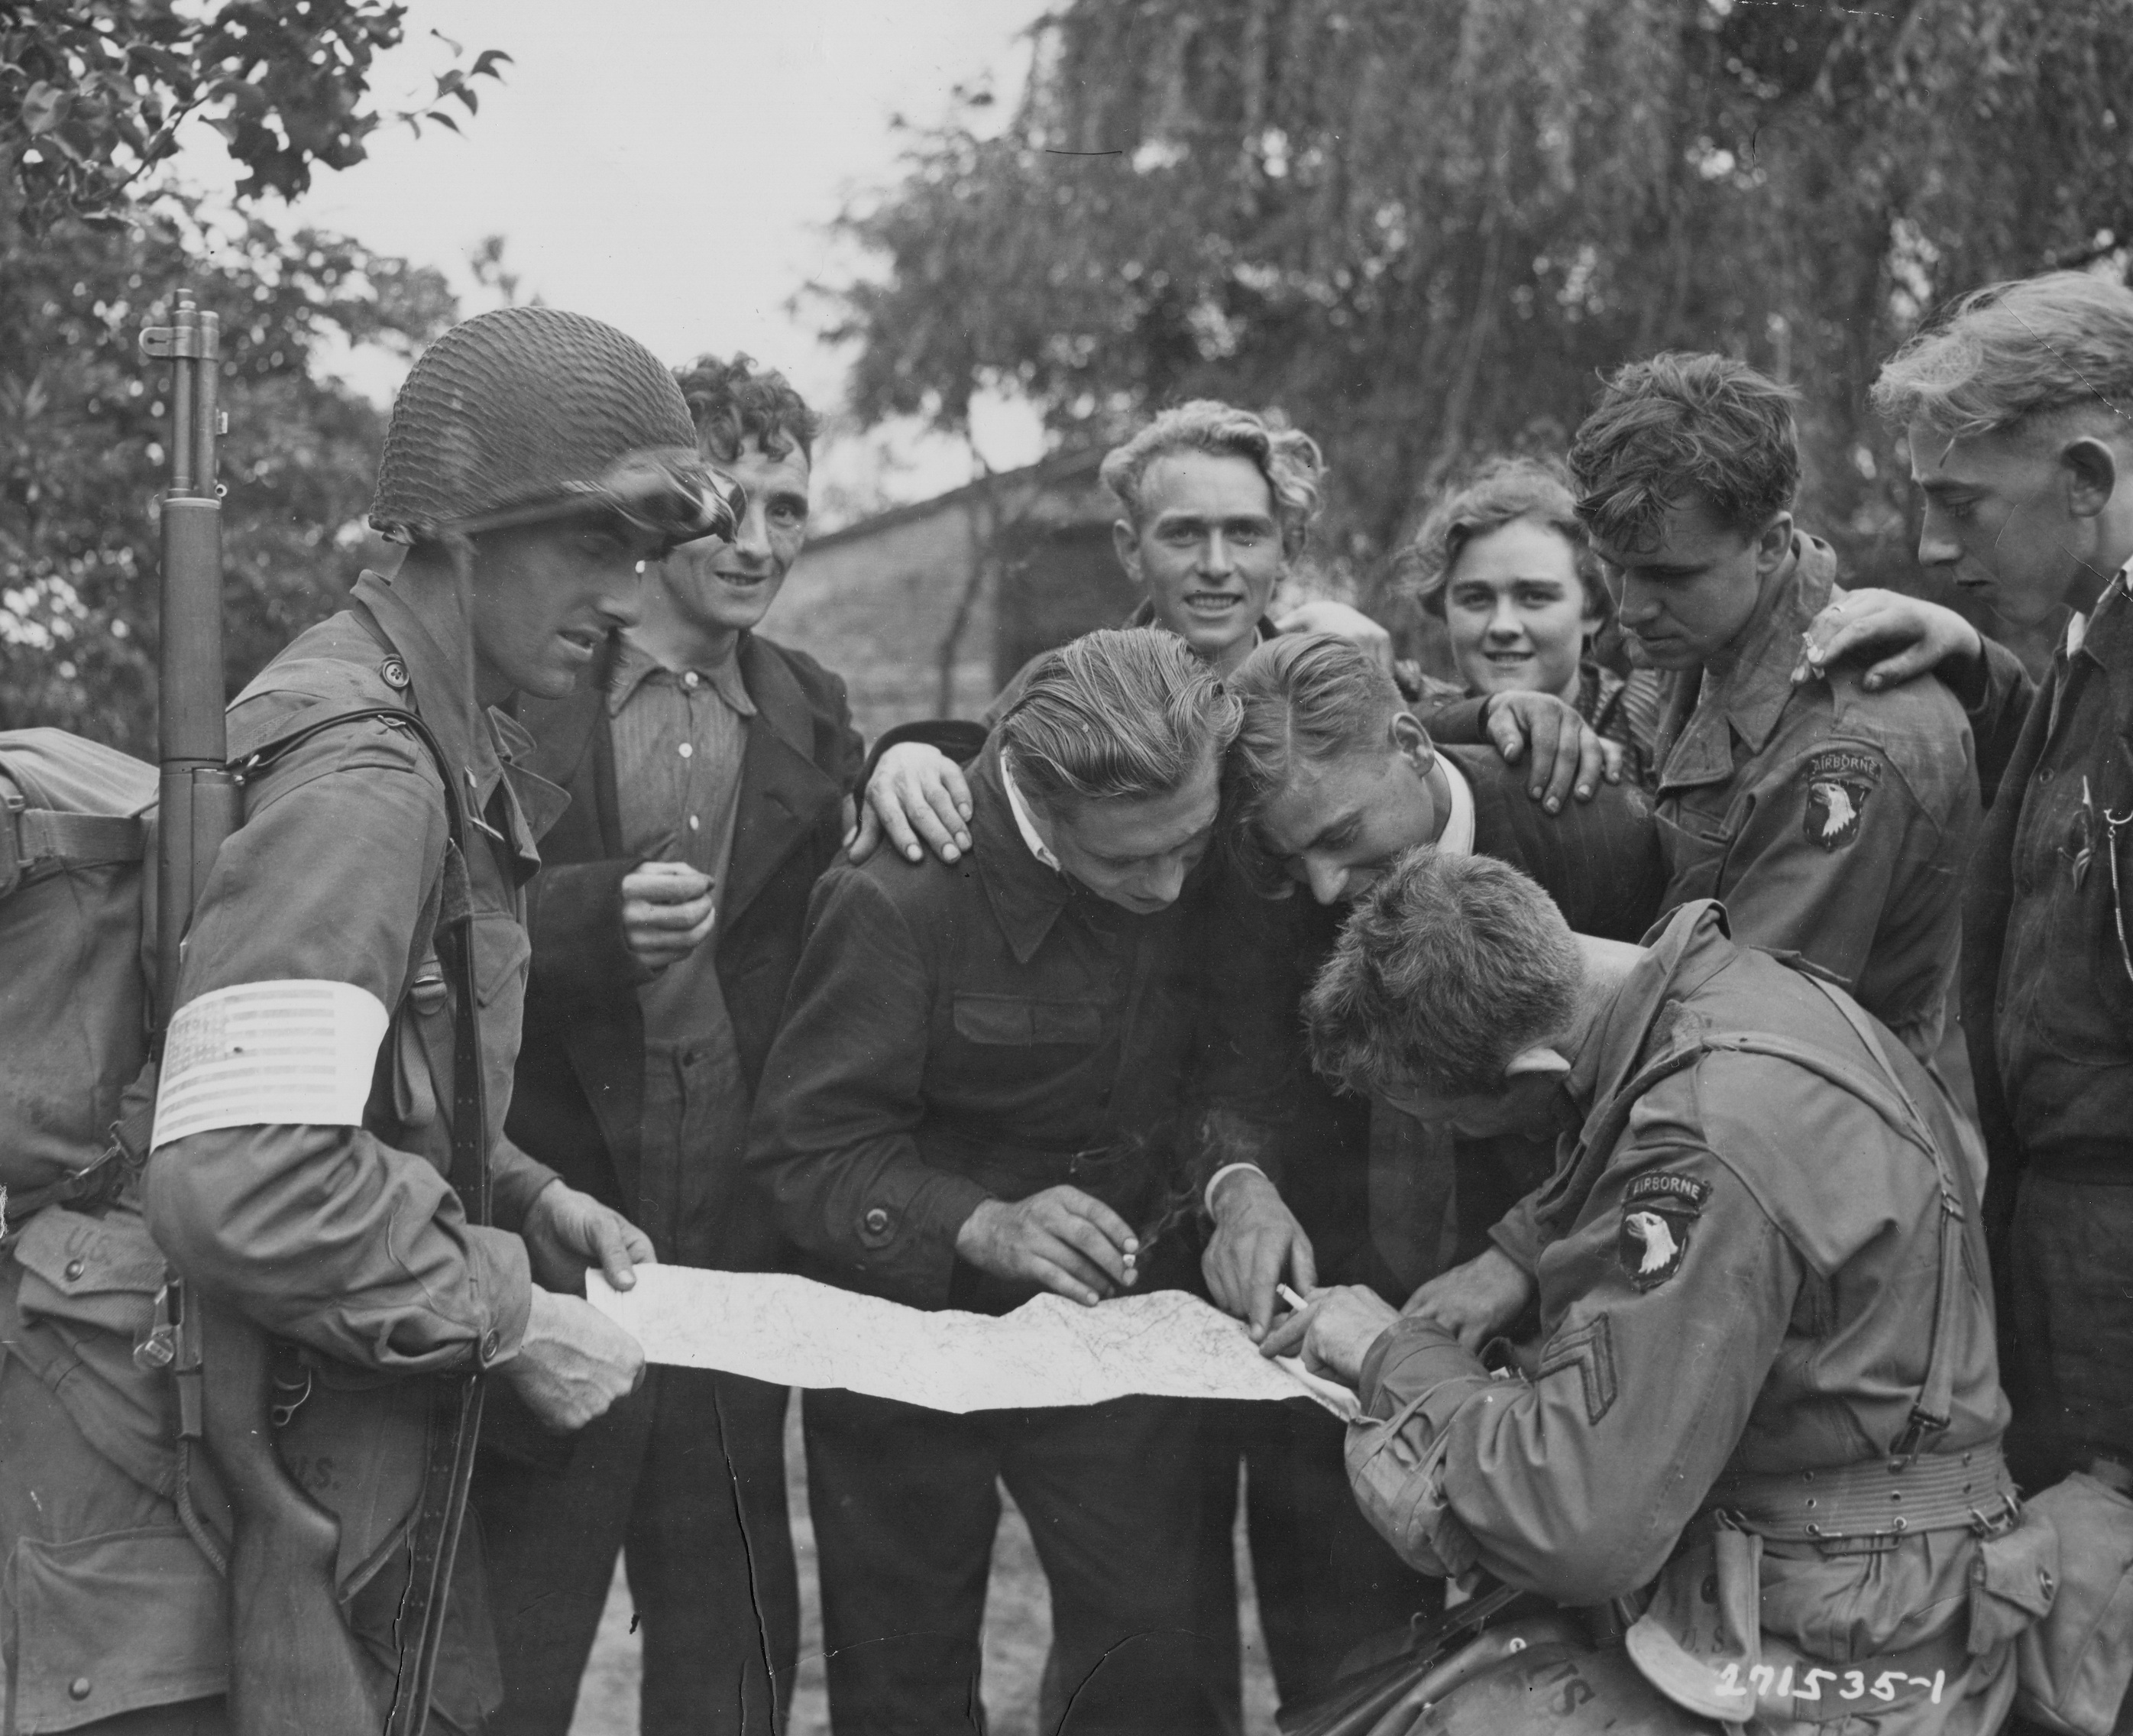 Dutch civilians with 101st Airborne Division Paratroopers during Operation Market Garden